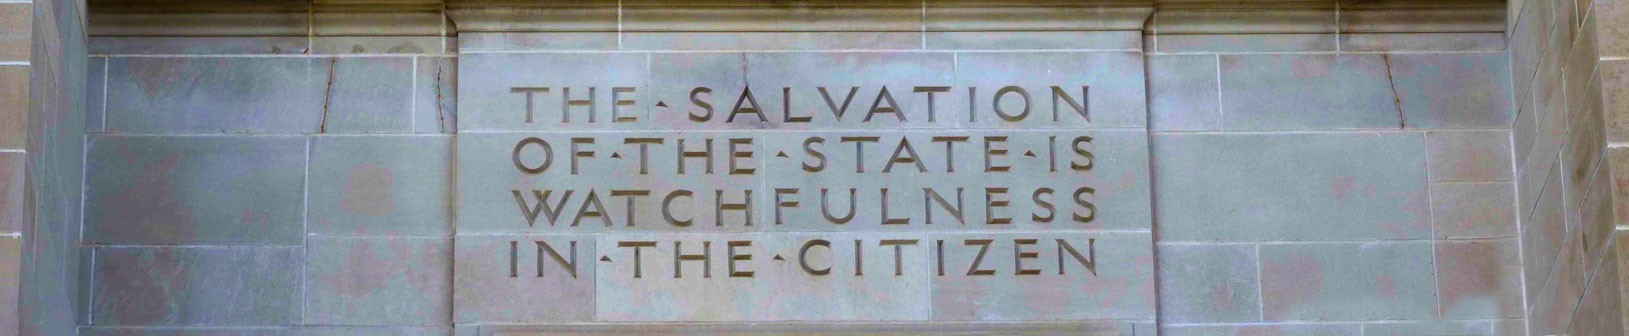 """THE SALVATION OF THE STATE IS WATCHFULNESS IN THE CITIZEN""--Hartley Burr Alexander"